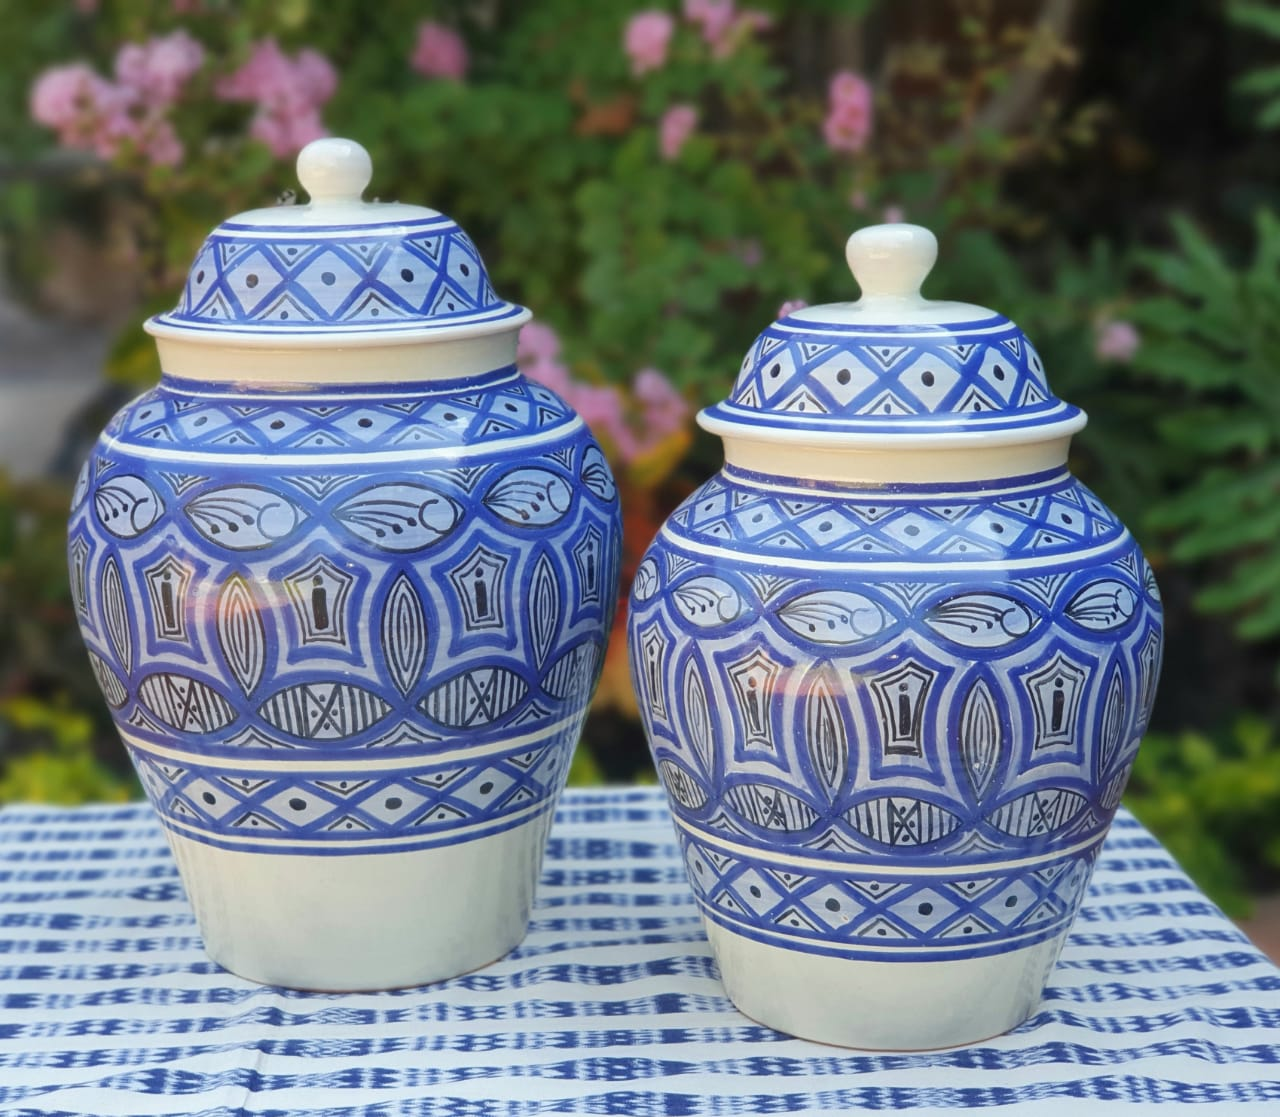 Decorative Vase w/Lid Set of 2 pieces (15, 16.5 in H) Morisco Pattern Blue and White